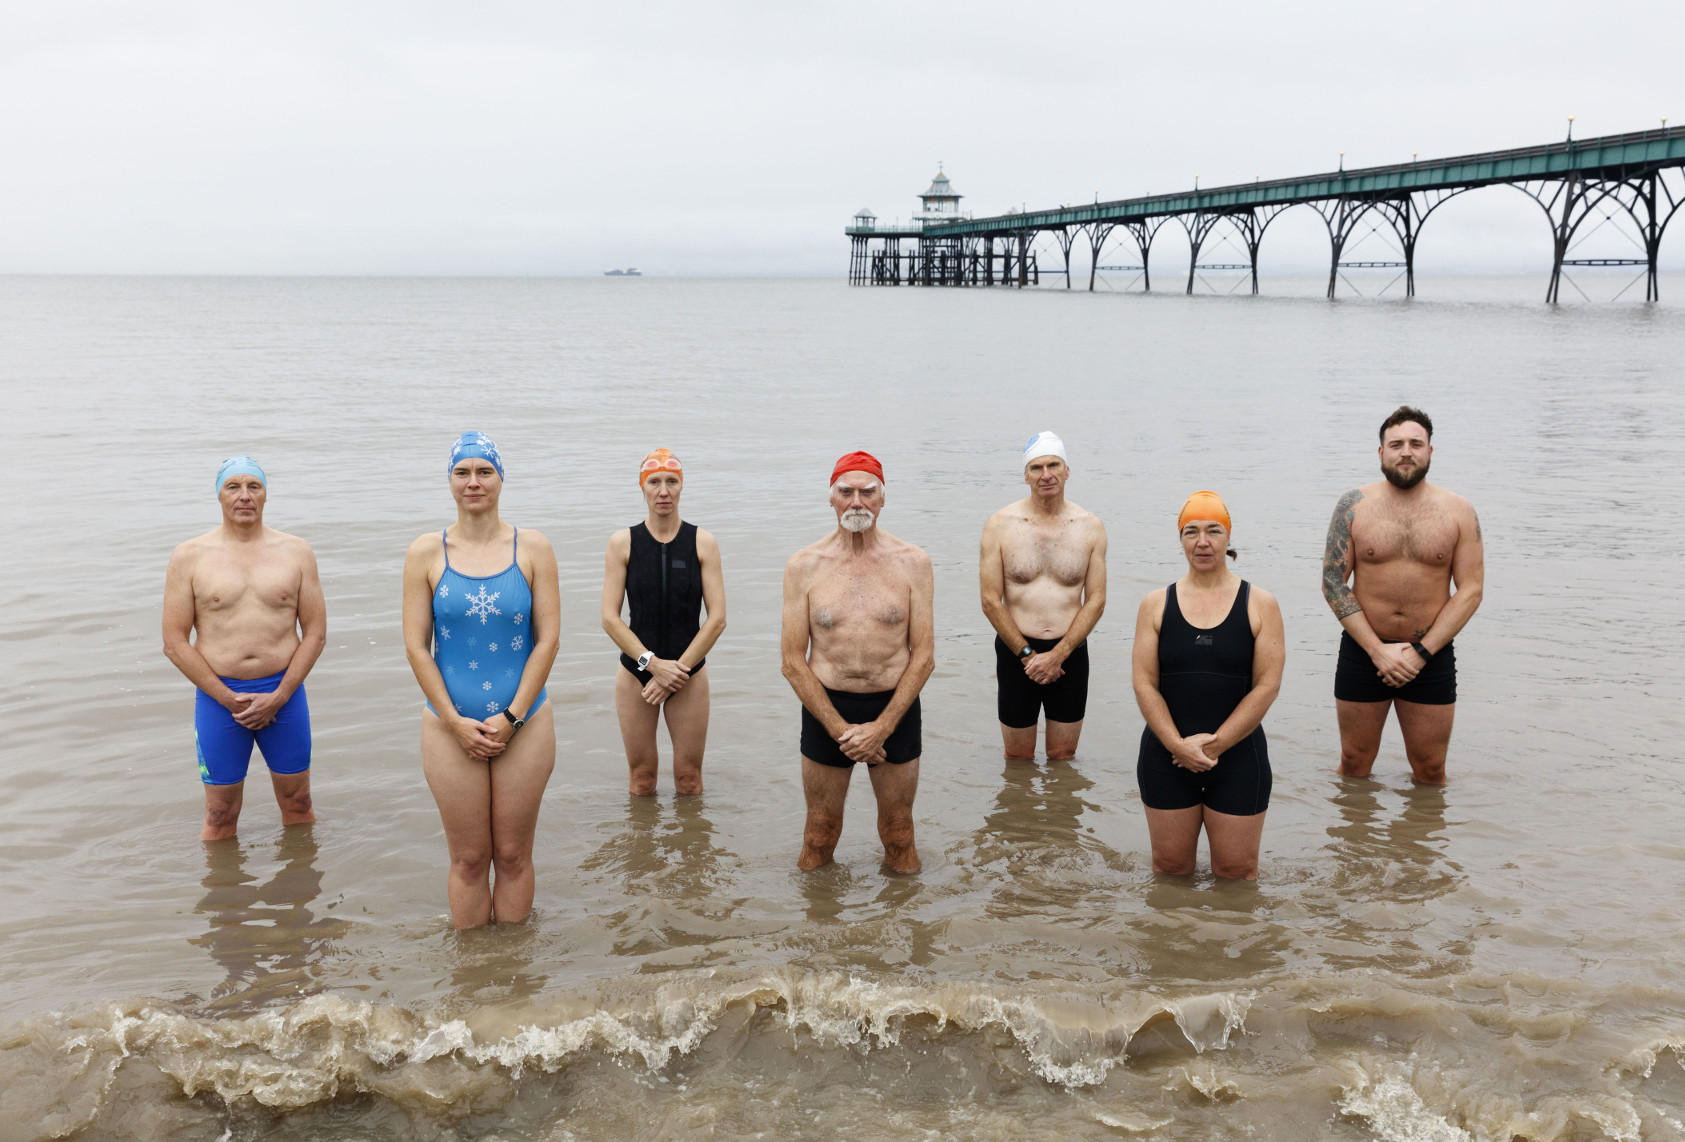 BBC One, Oneness, Swimmers, Clevedon, Photographer: Martin Parr